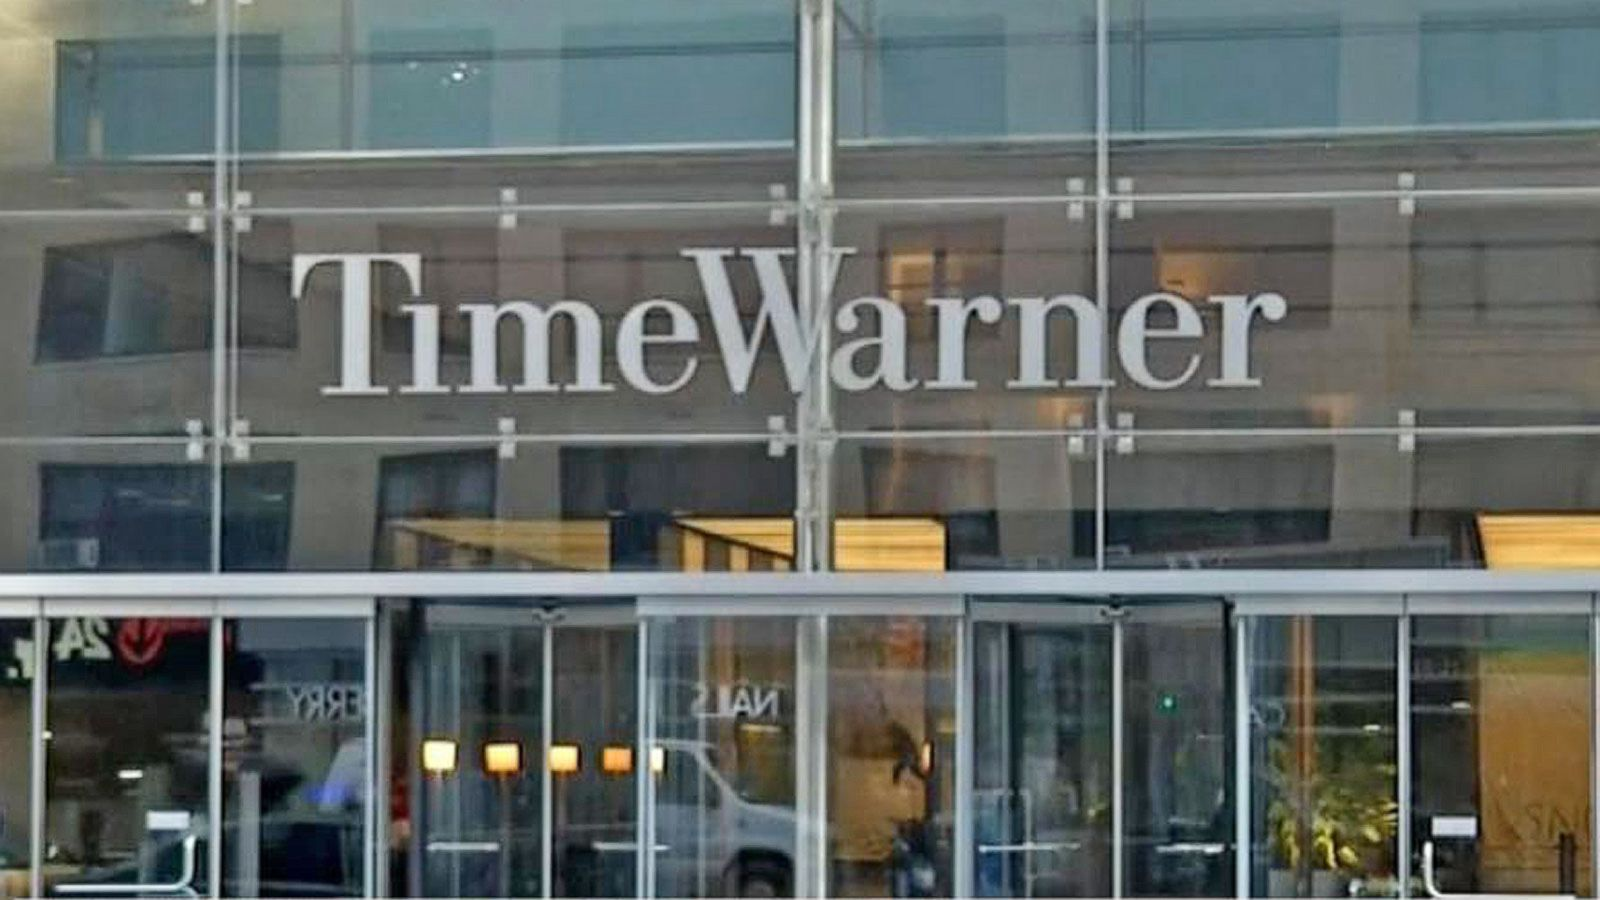 VIDEO: Time Warner Buyout by AT&T Raises Concerns it Could Impact Consumers